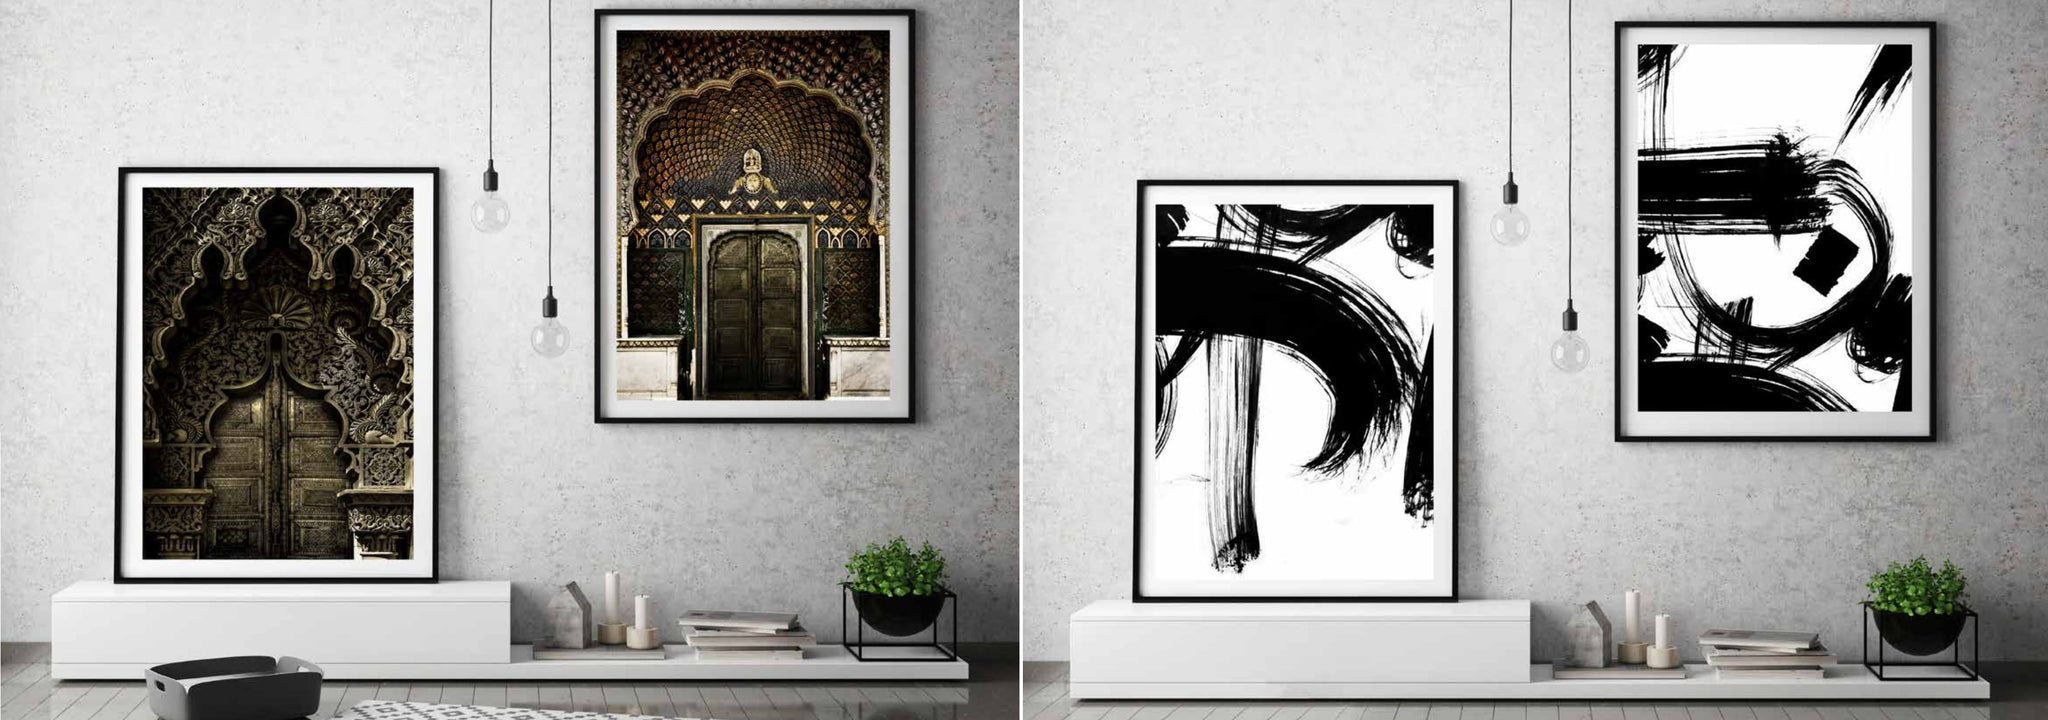 Moroccan Framed Prints